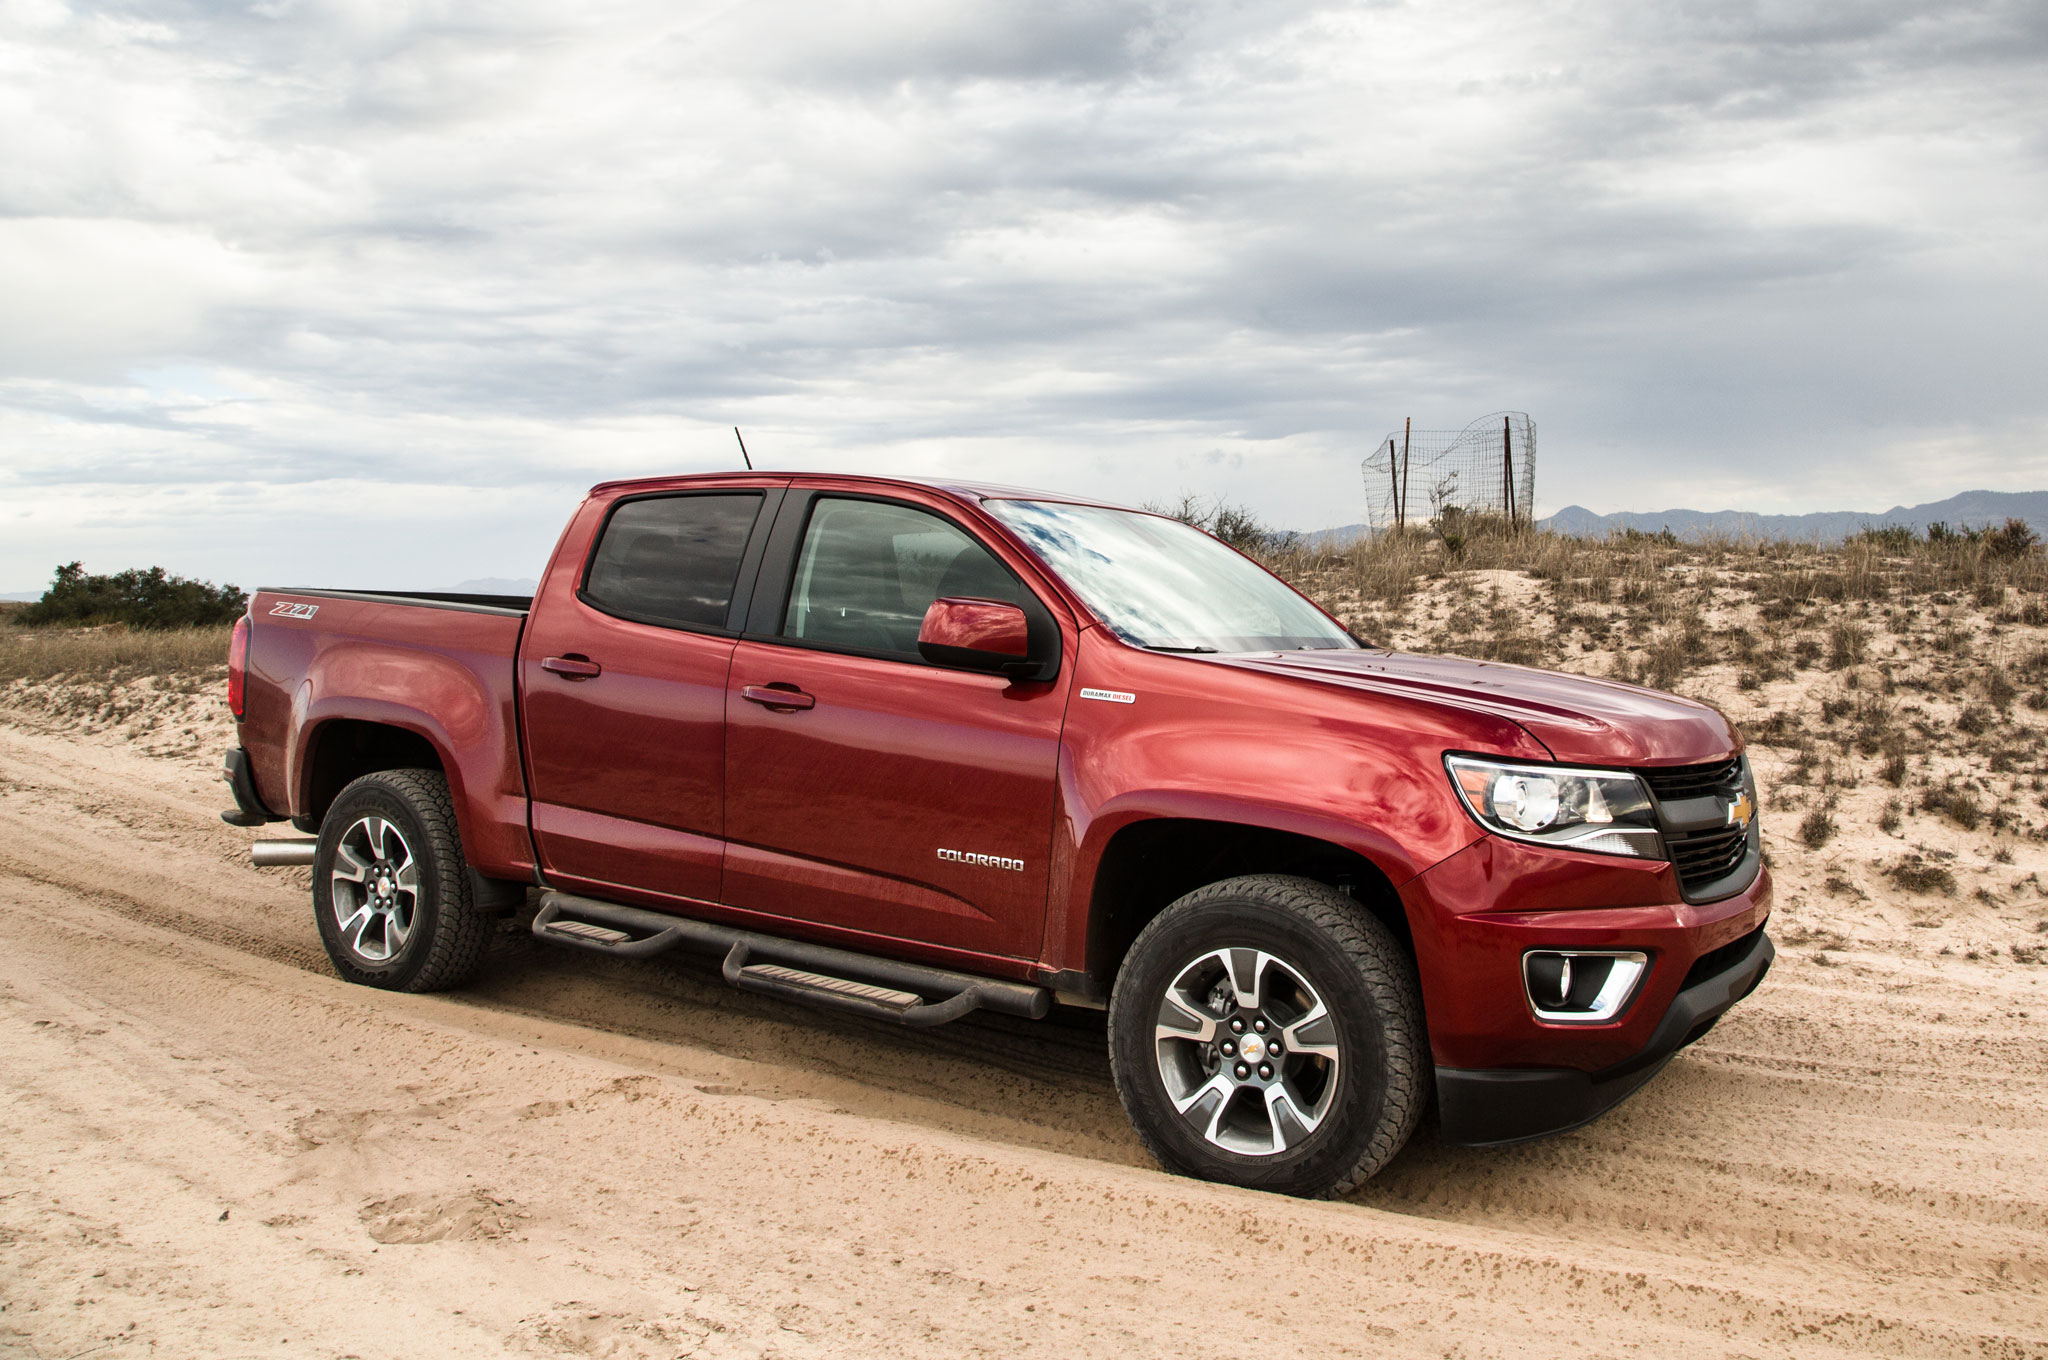 2017 chevrolet colorado shoreline edition aims for west coast buyers automobile magazine. Black Bedroom Furniture Sets. Home Design Ideas